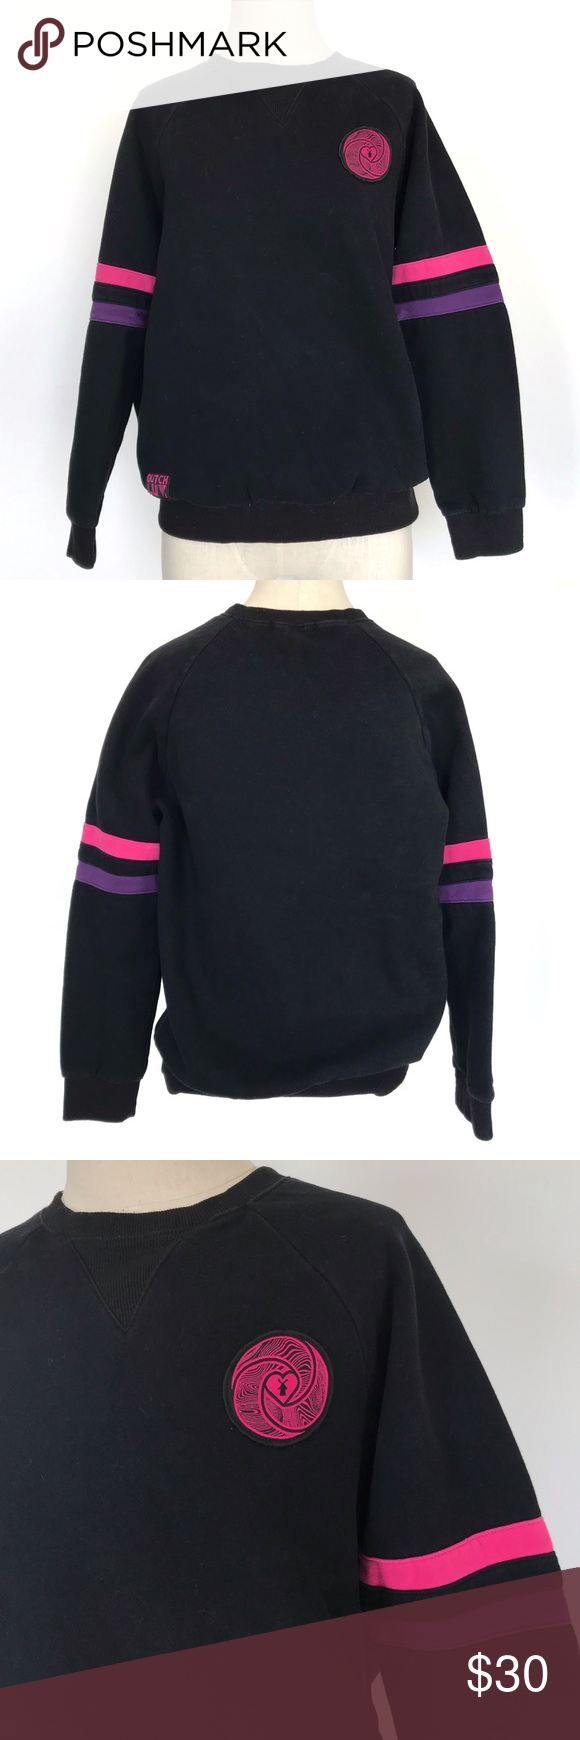 """Dutch Bros Dutch Luv Sweatshirt Dutch Brothers Dutch Luv black sweatshirt with purple and pink  Women's size extra large - refer to measurements  Condition- pre-owned 